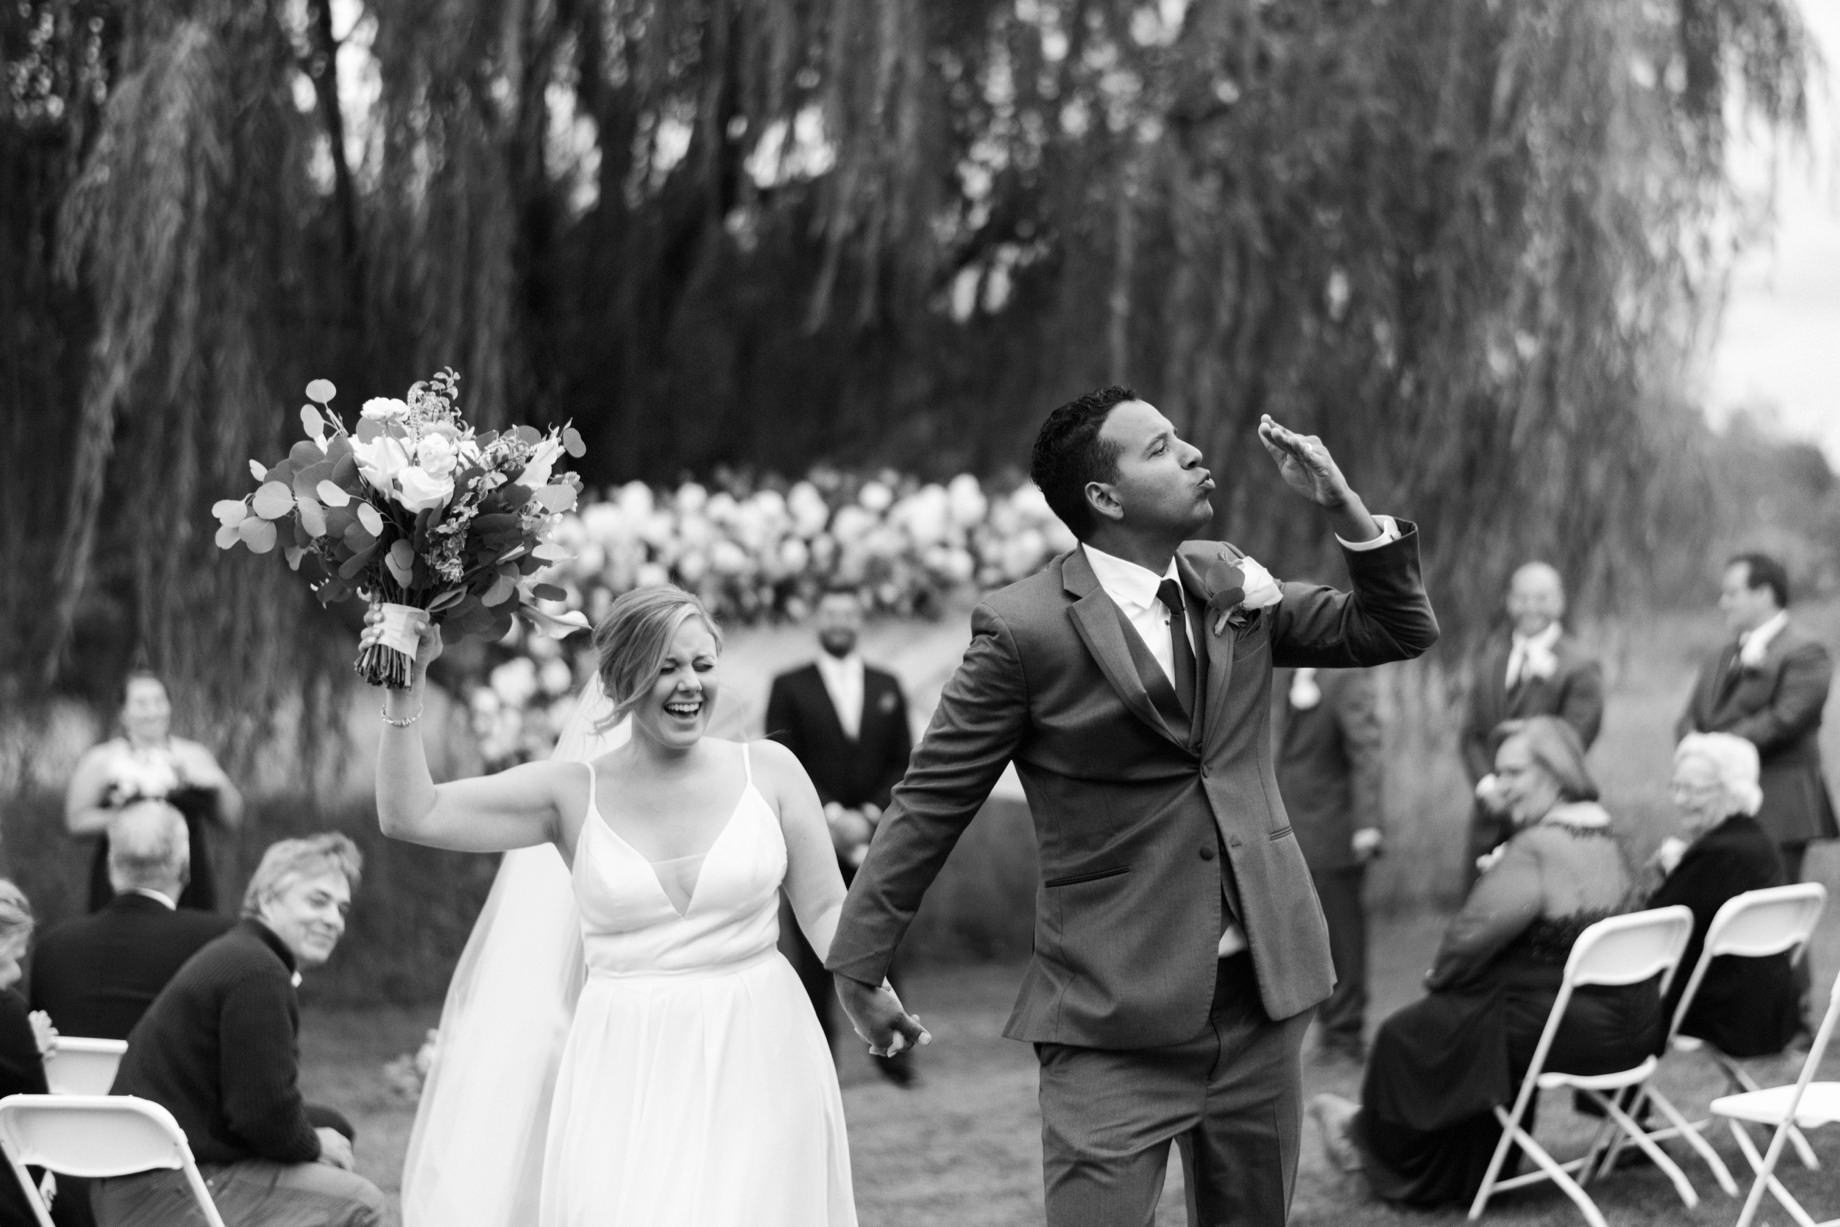 a groom blows a kiss after his wedding ceremony